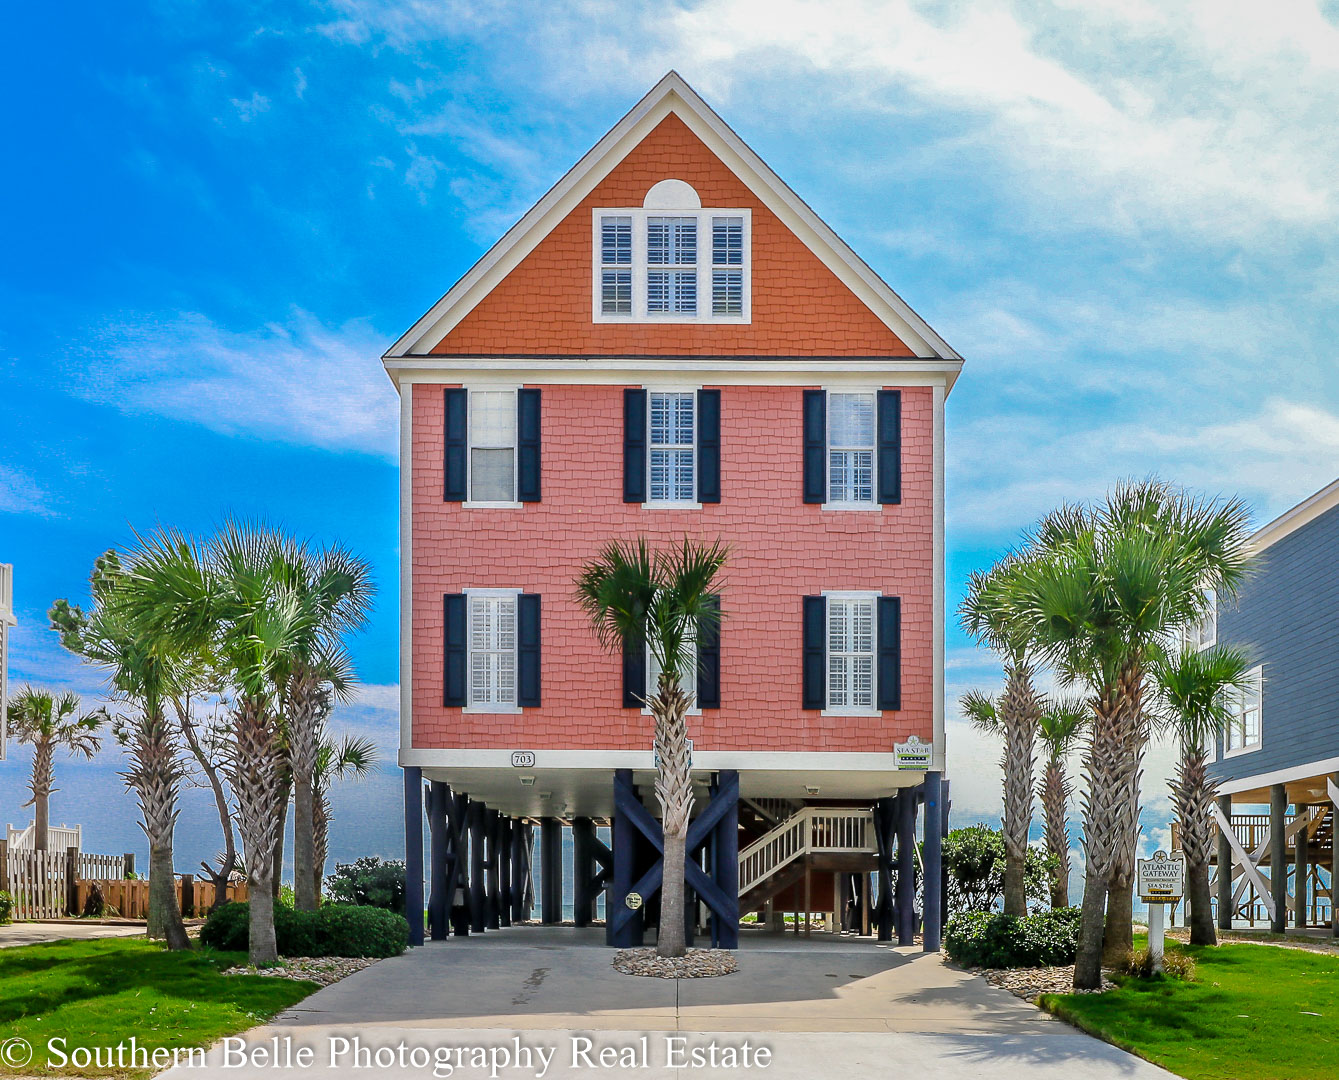 Pet Friendly Hotels In Myrtle Beach Sc Dog Friendly Hotels